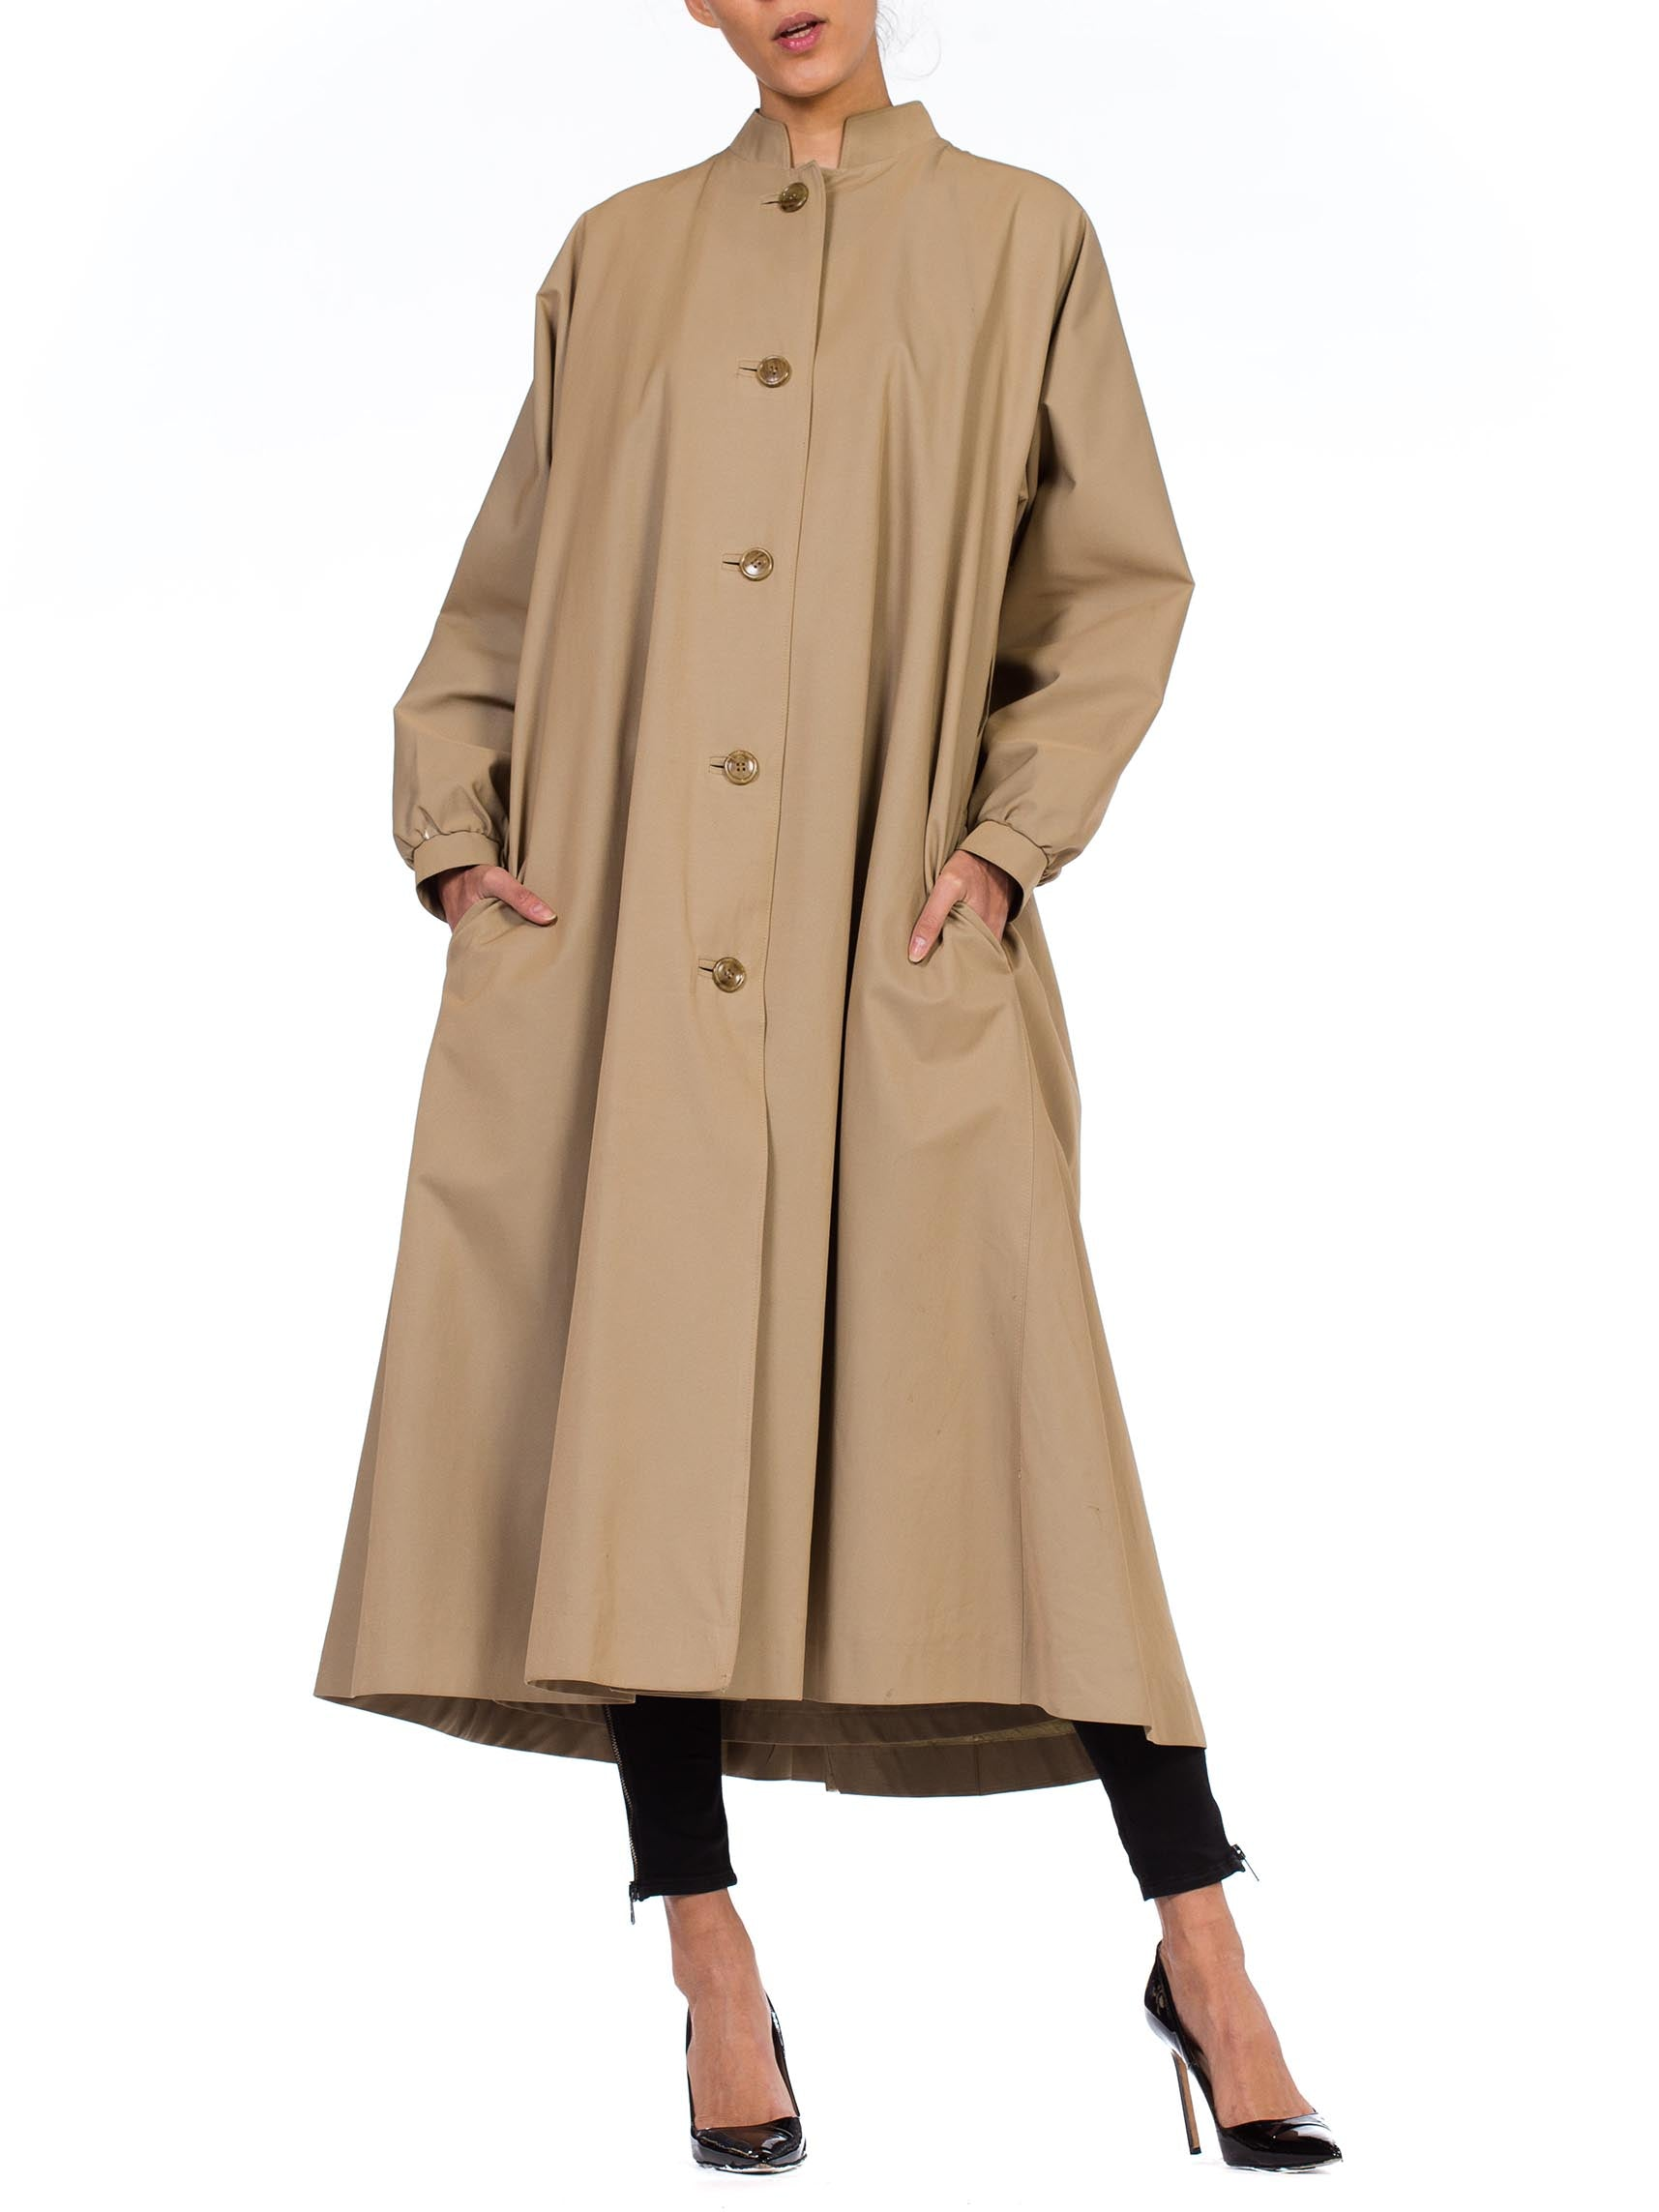 1970s Halston Rain Trench Coat